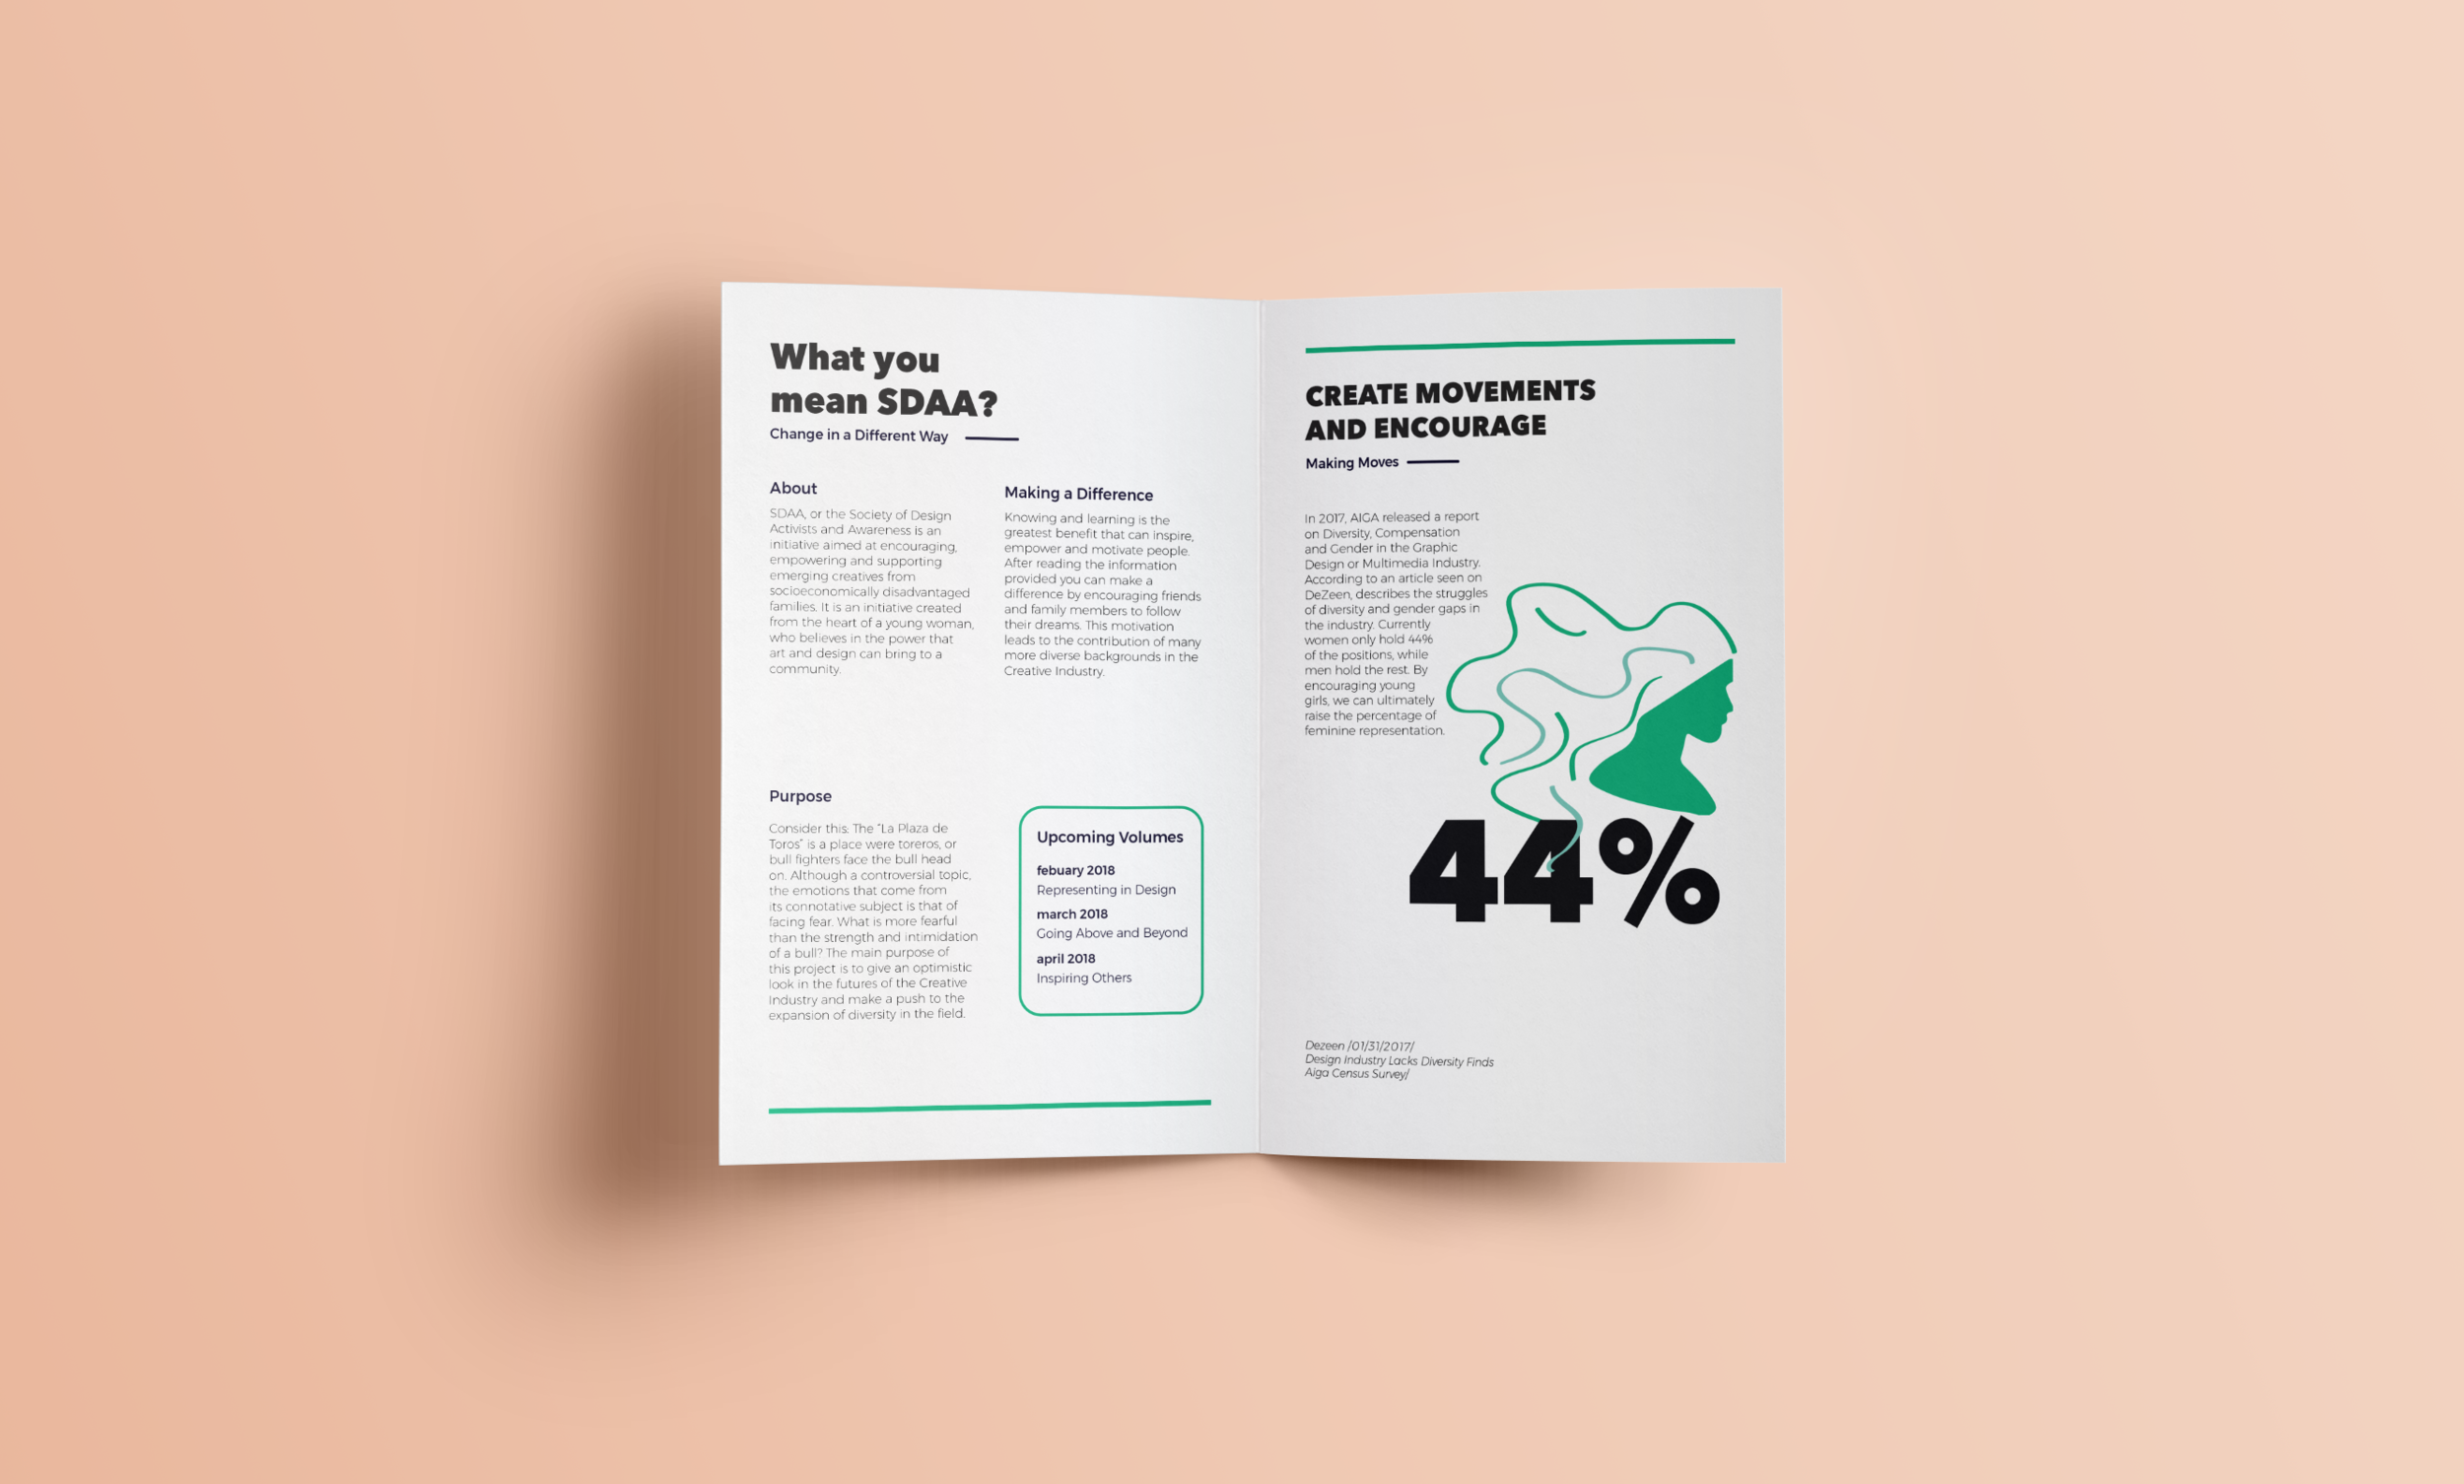 Design + Research - Every pamphlet made included information and data on the creative industry.